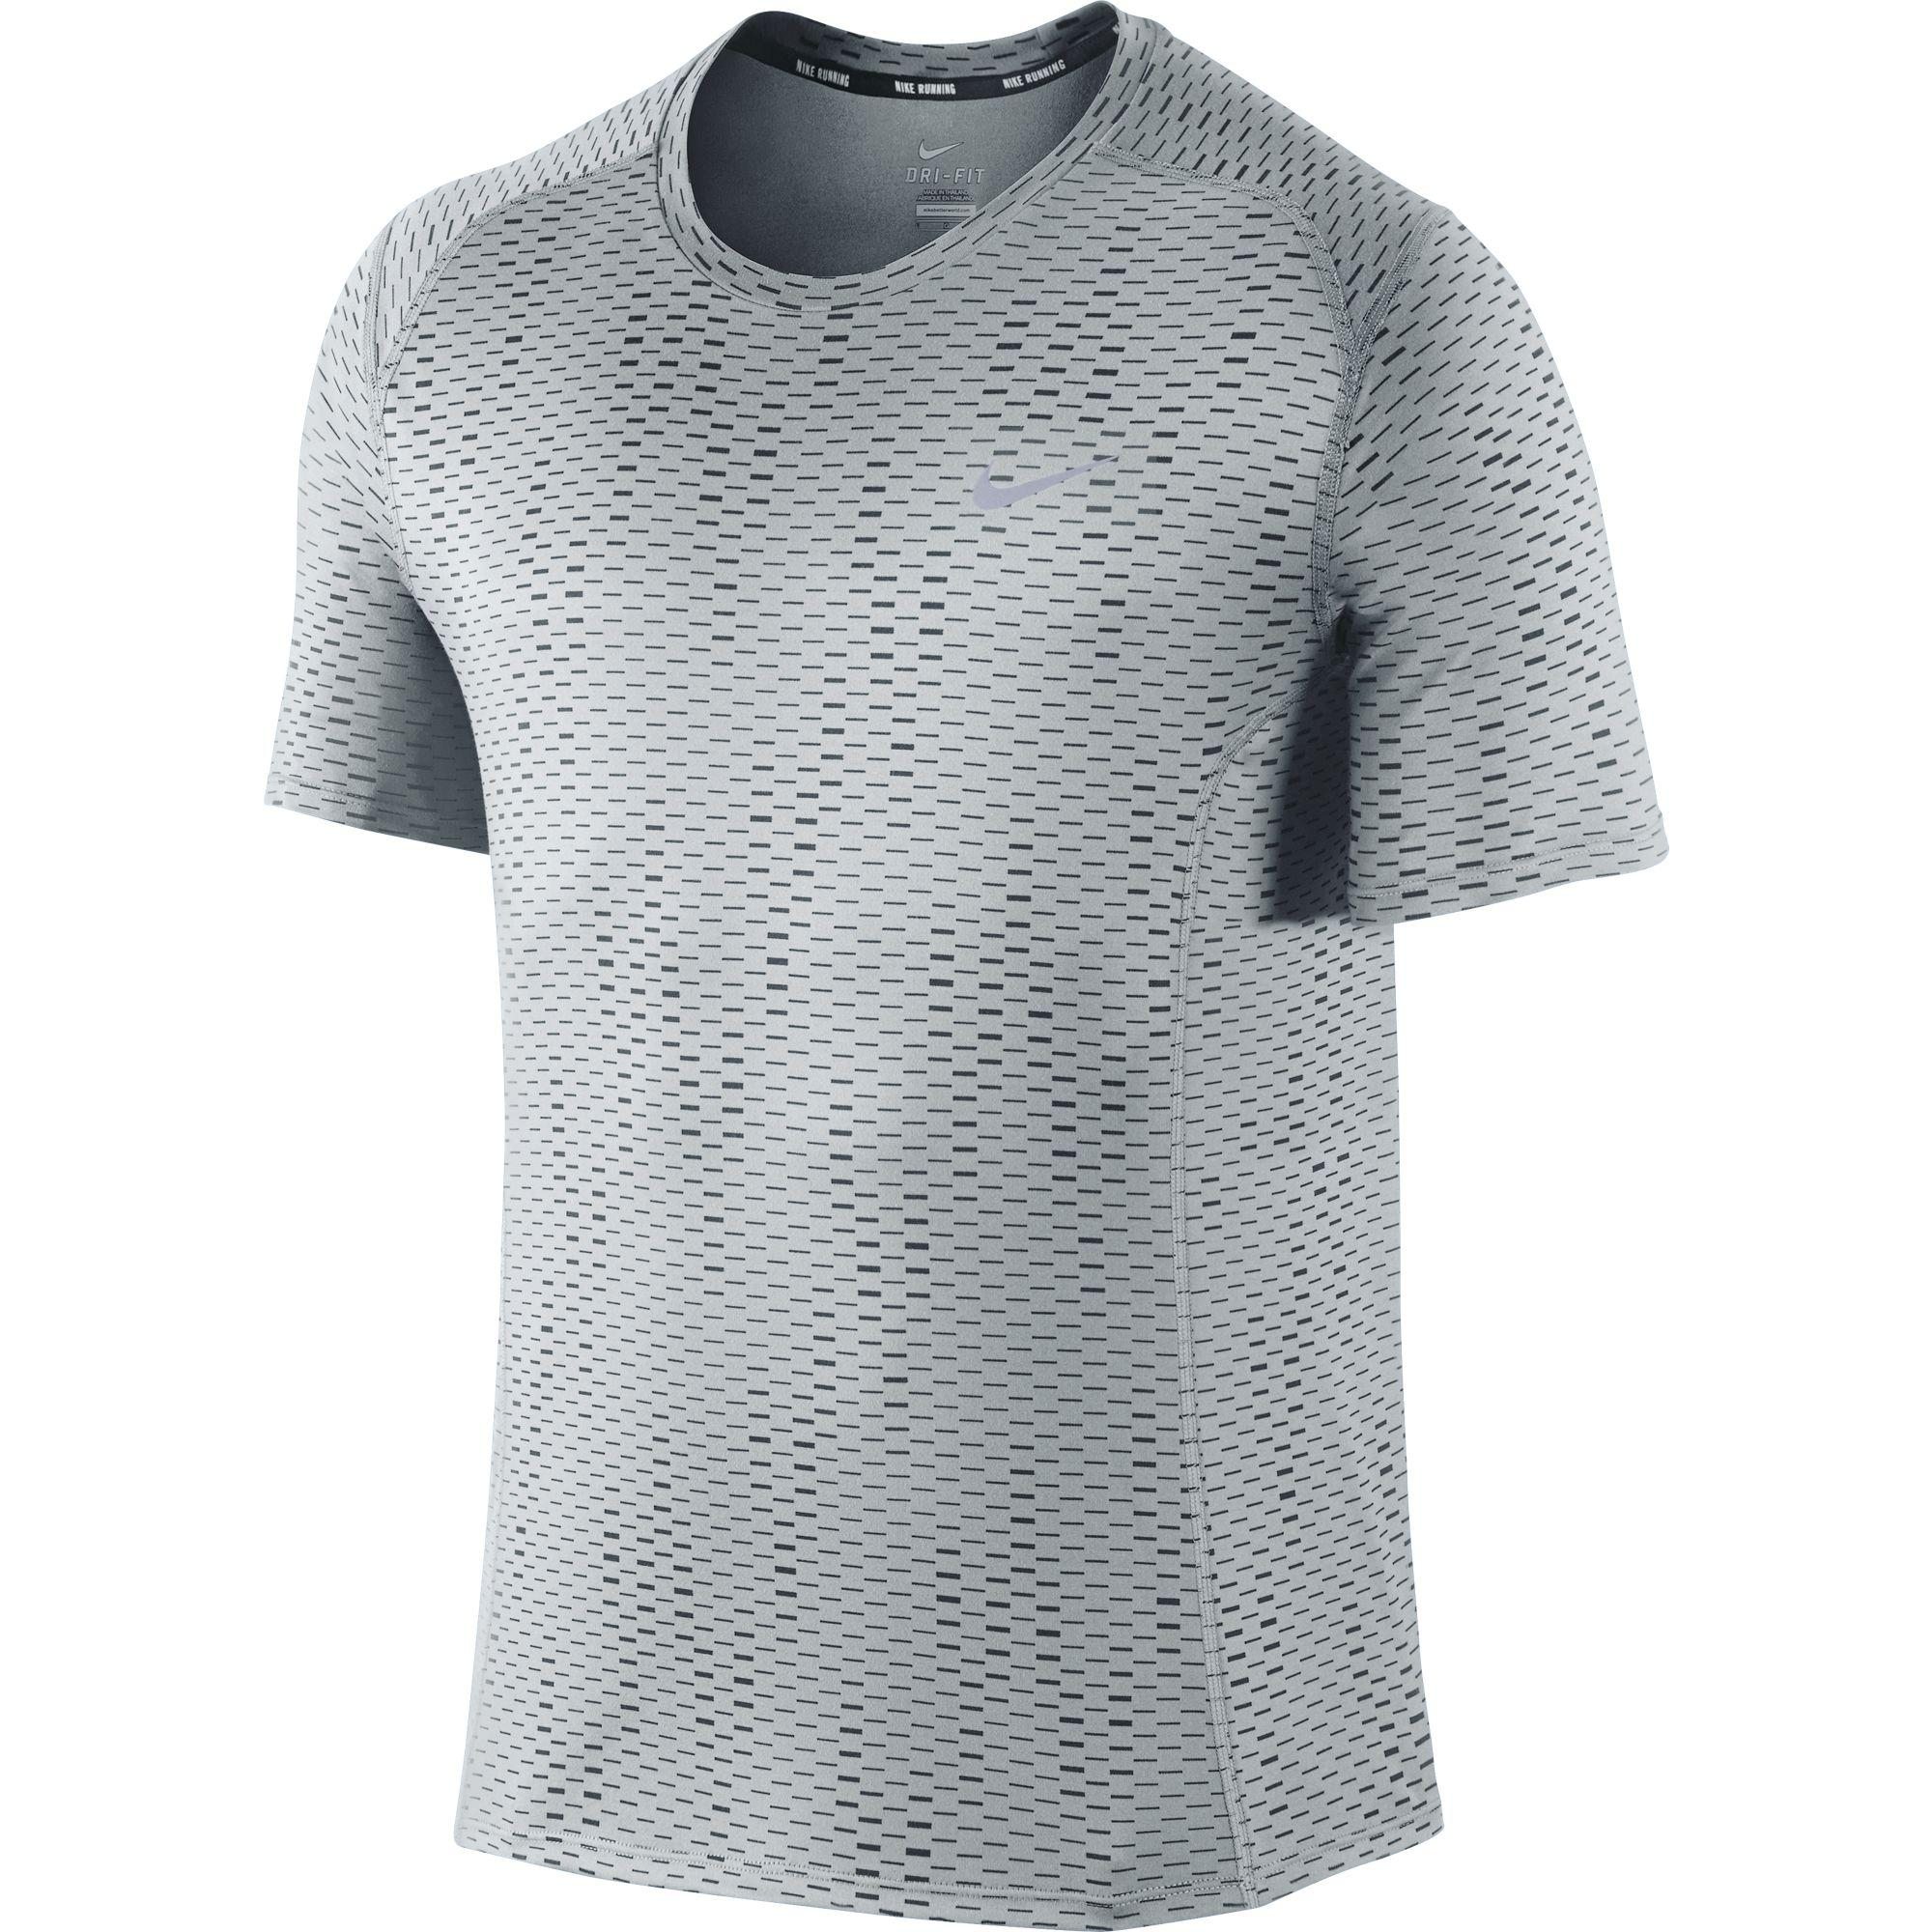 Nike Mens Dri-FIT Miler Fuse Top - Grey